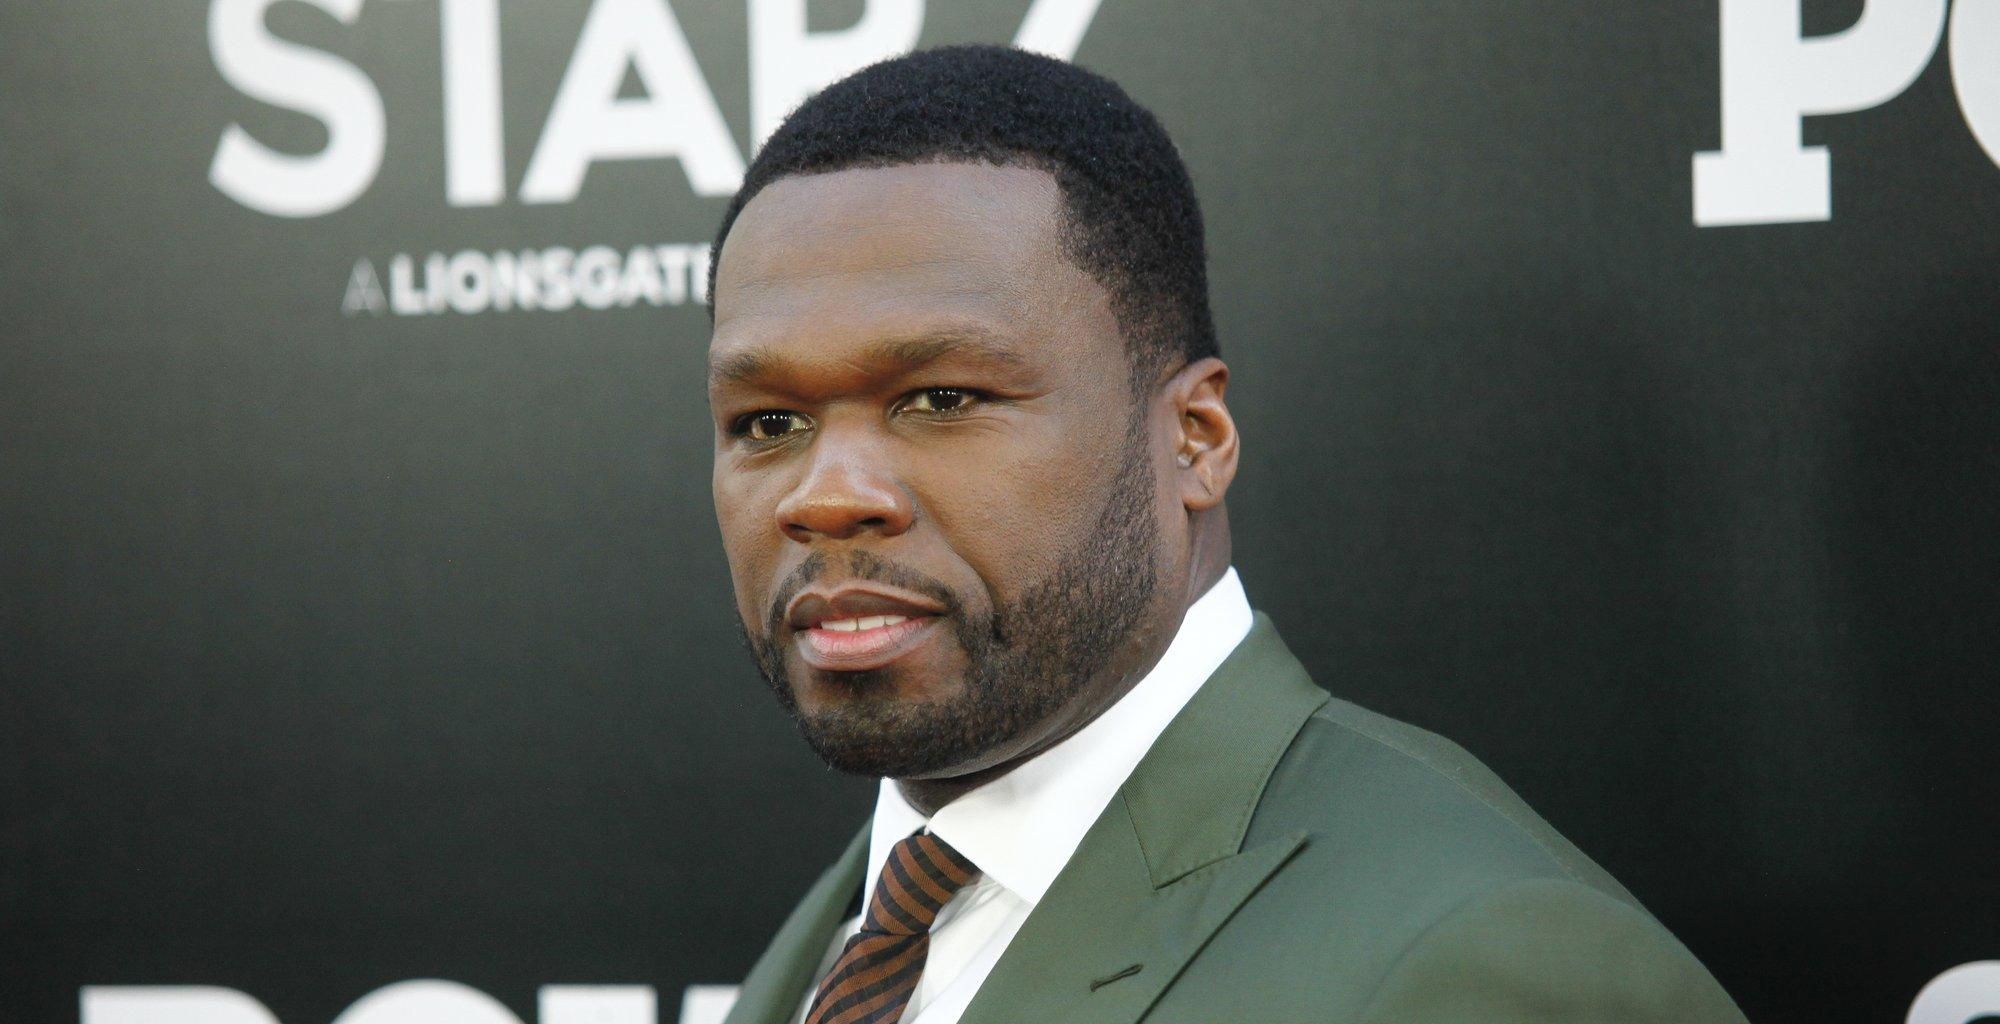 50 Cent Enrages People With Offensive 'Trans-Slender' Meme Post!